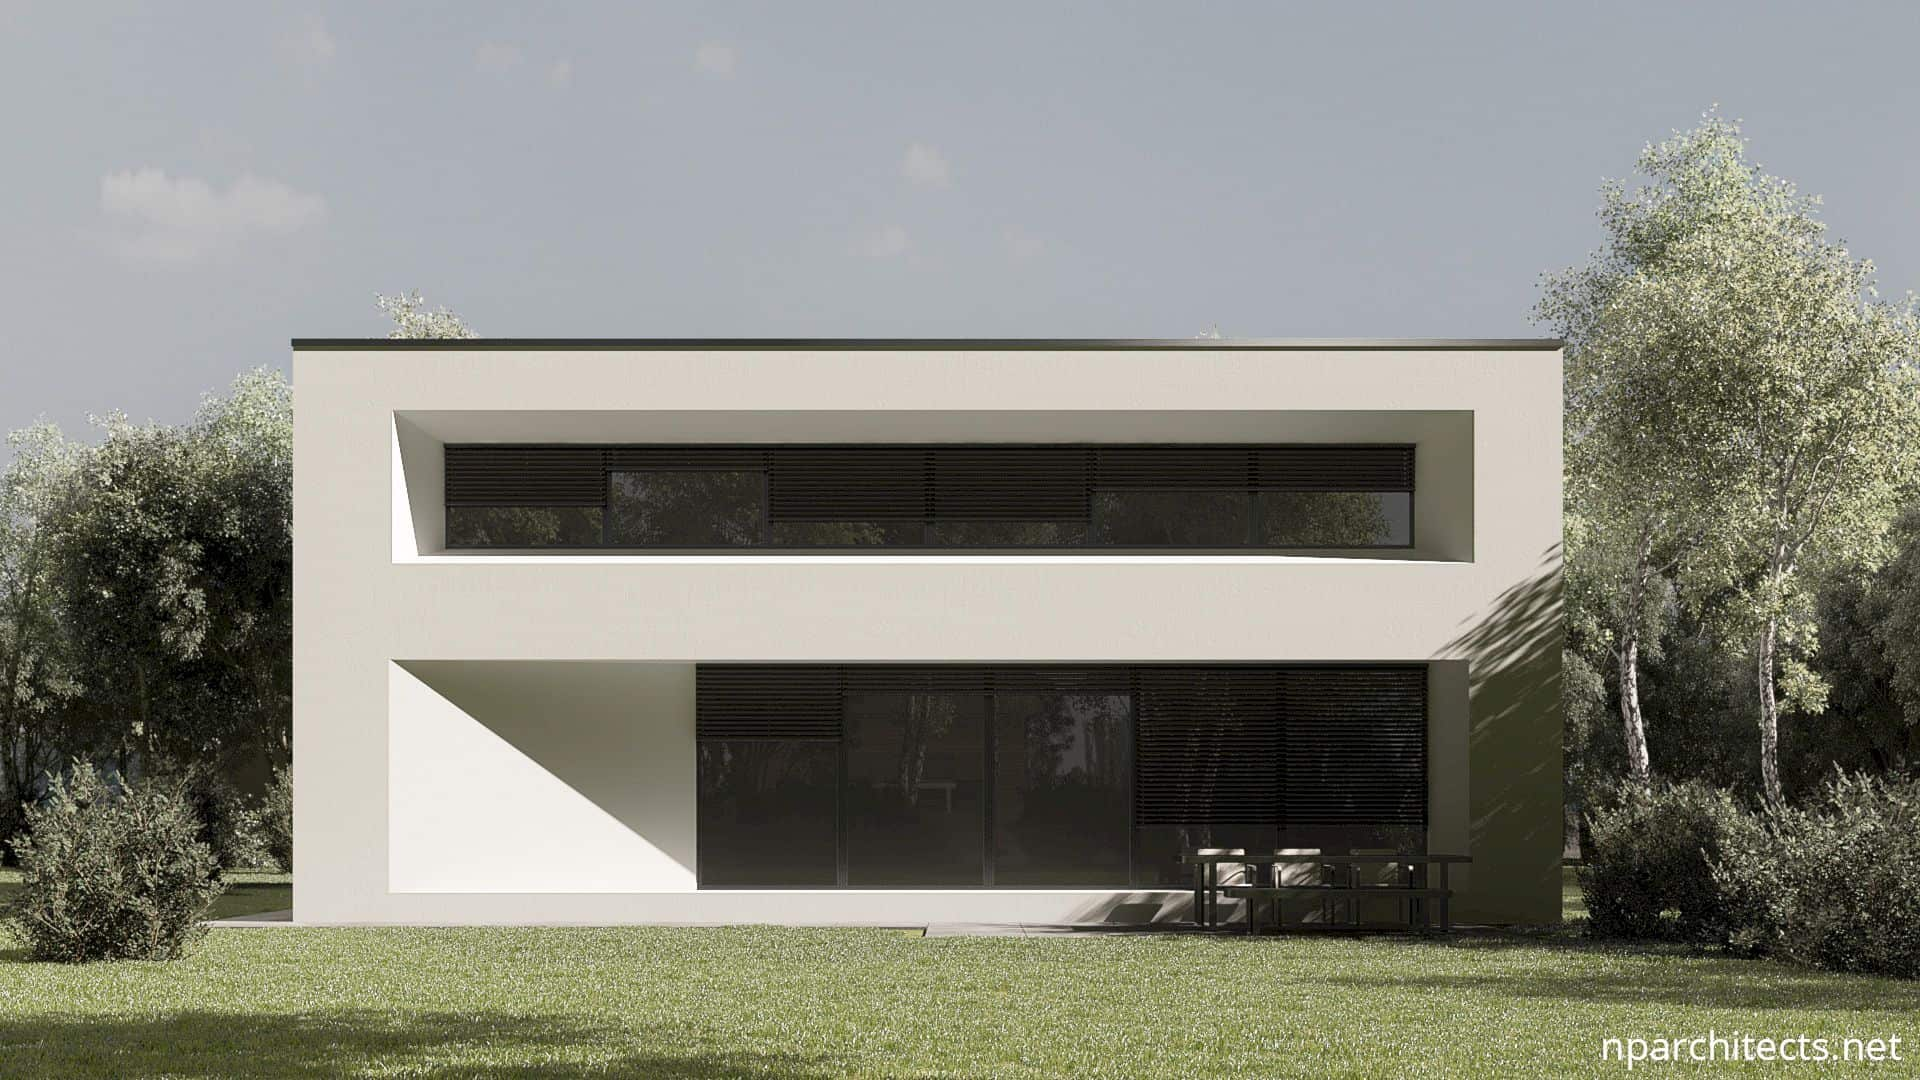 Flat House: A Modern House with A Clean Architecture Design